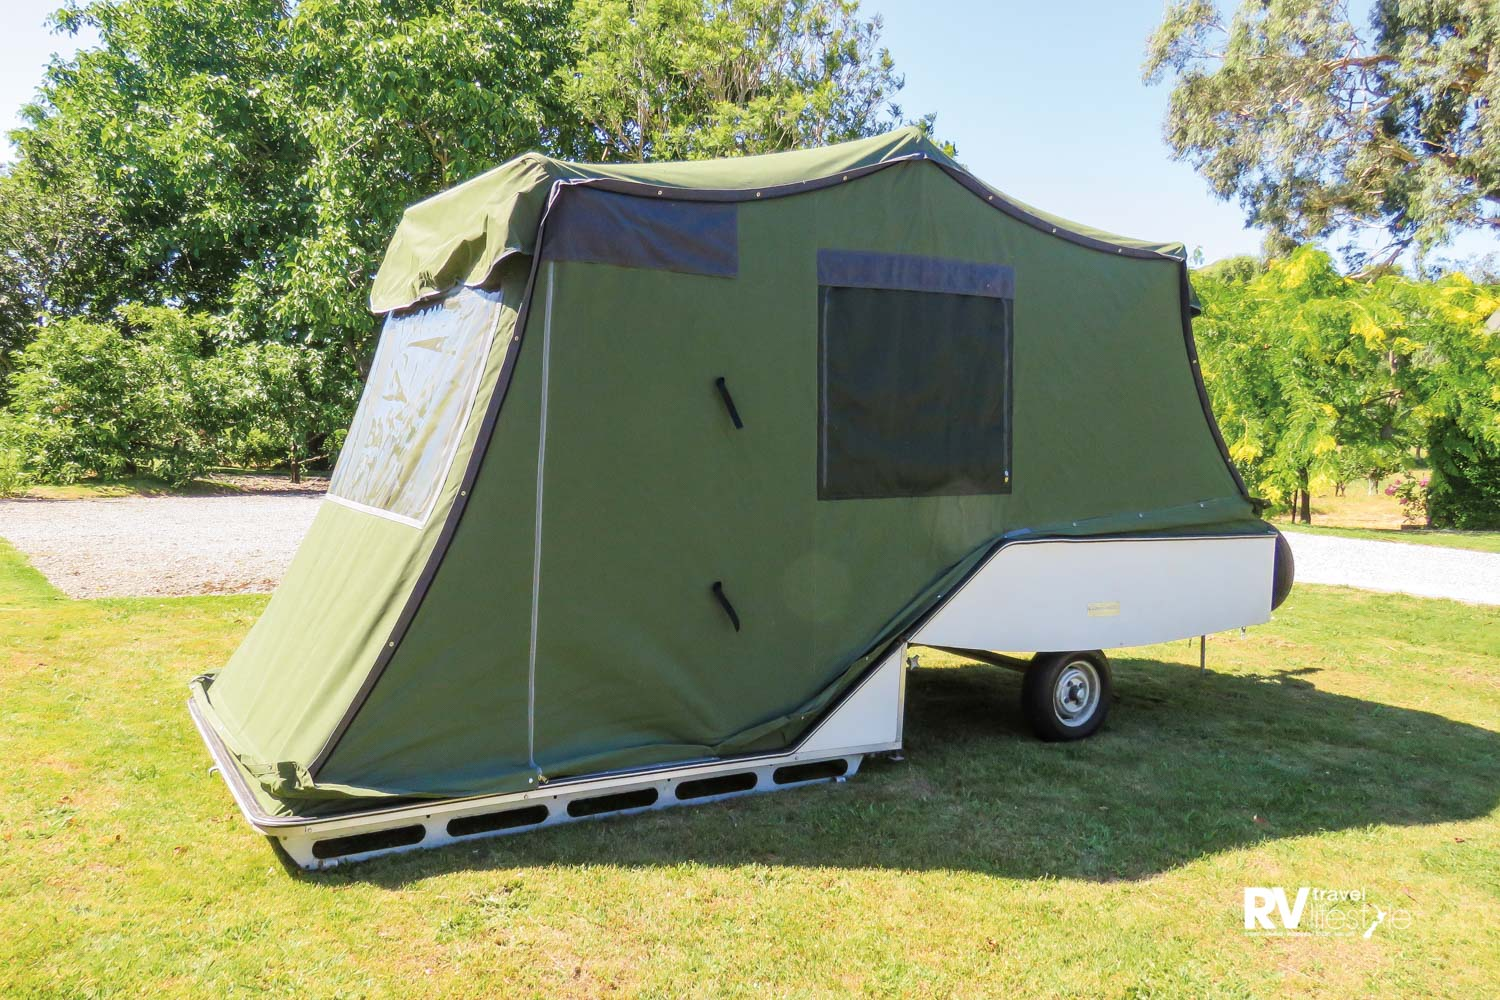 The Camp-o-matic with its smart new canvas and windows with fly screens